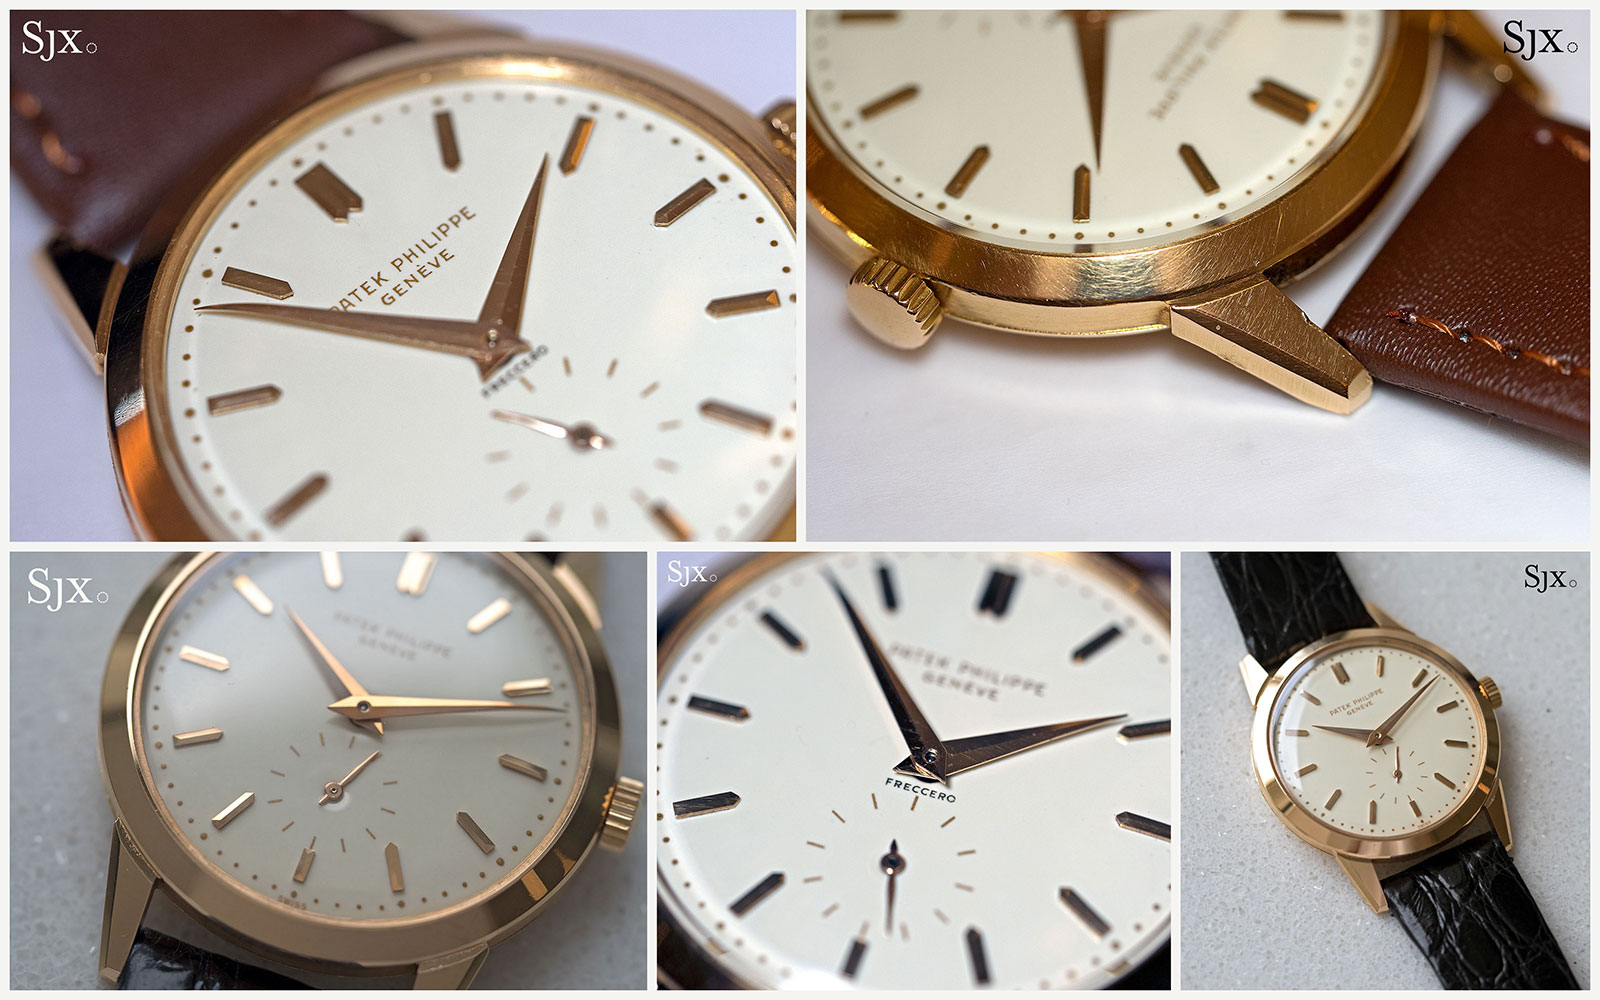 Patek Philippe 2577 collage